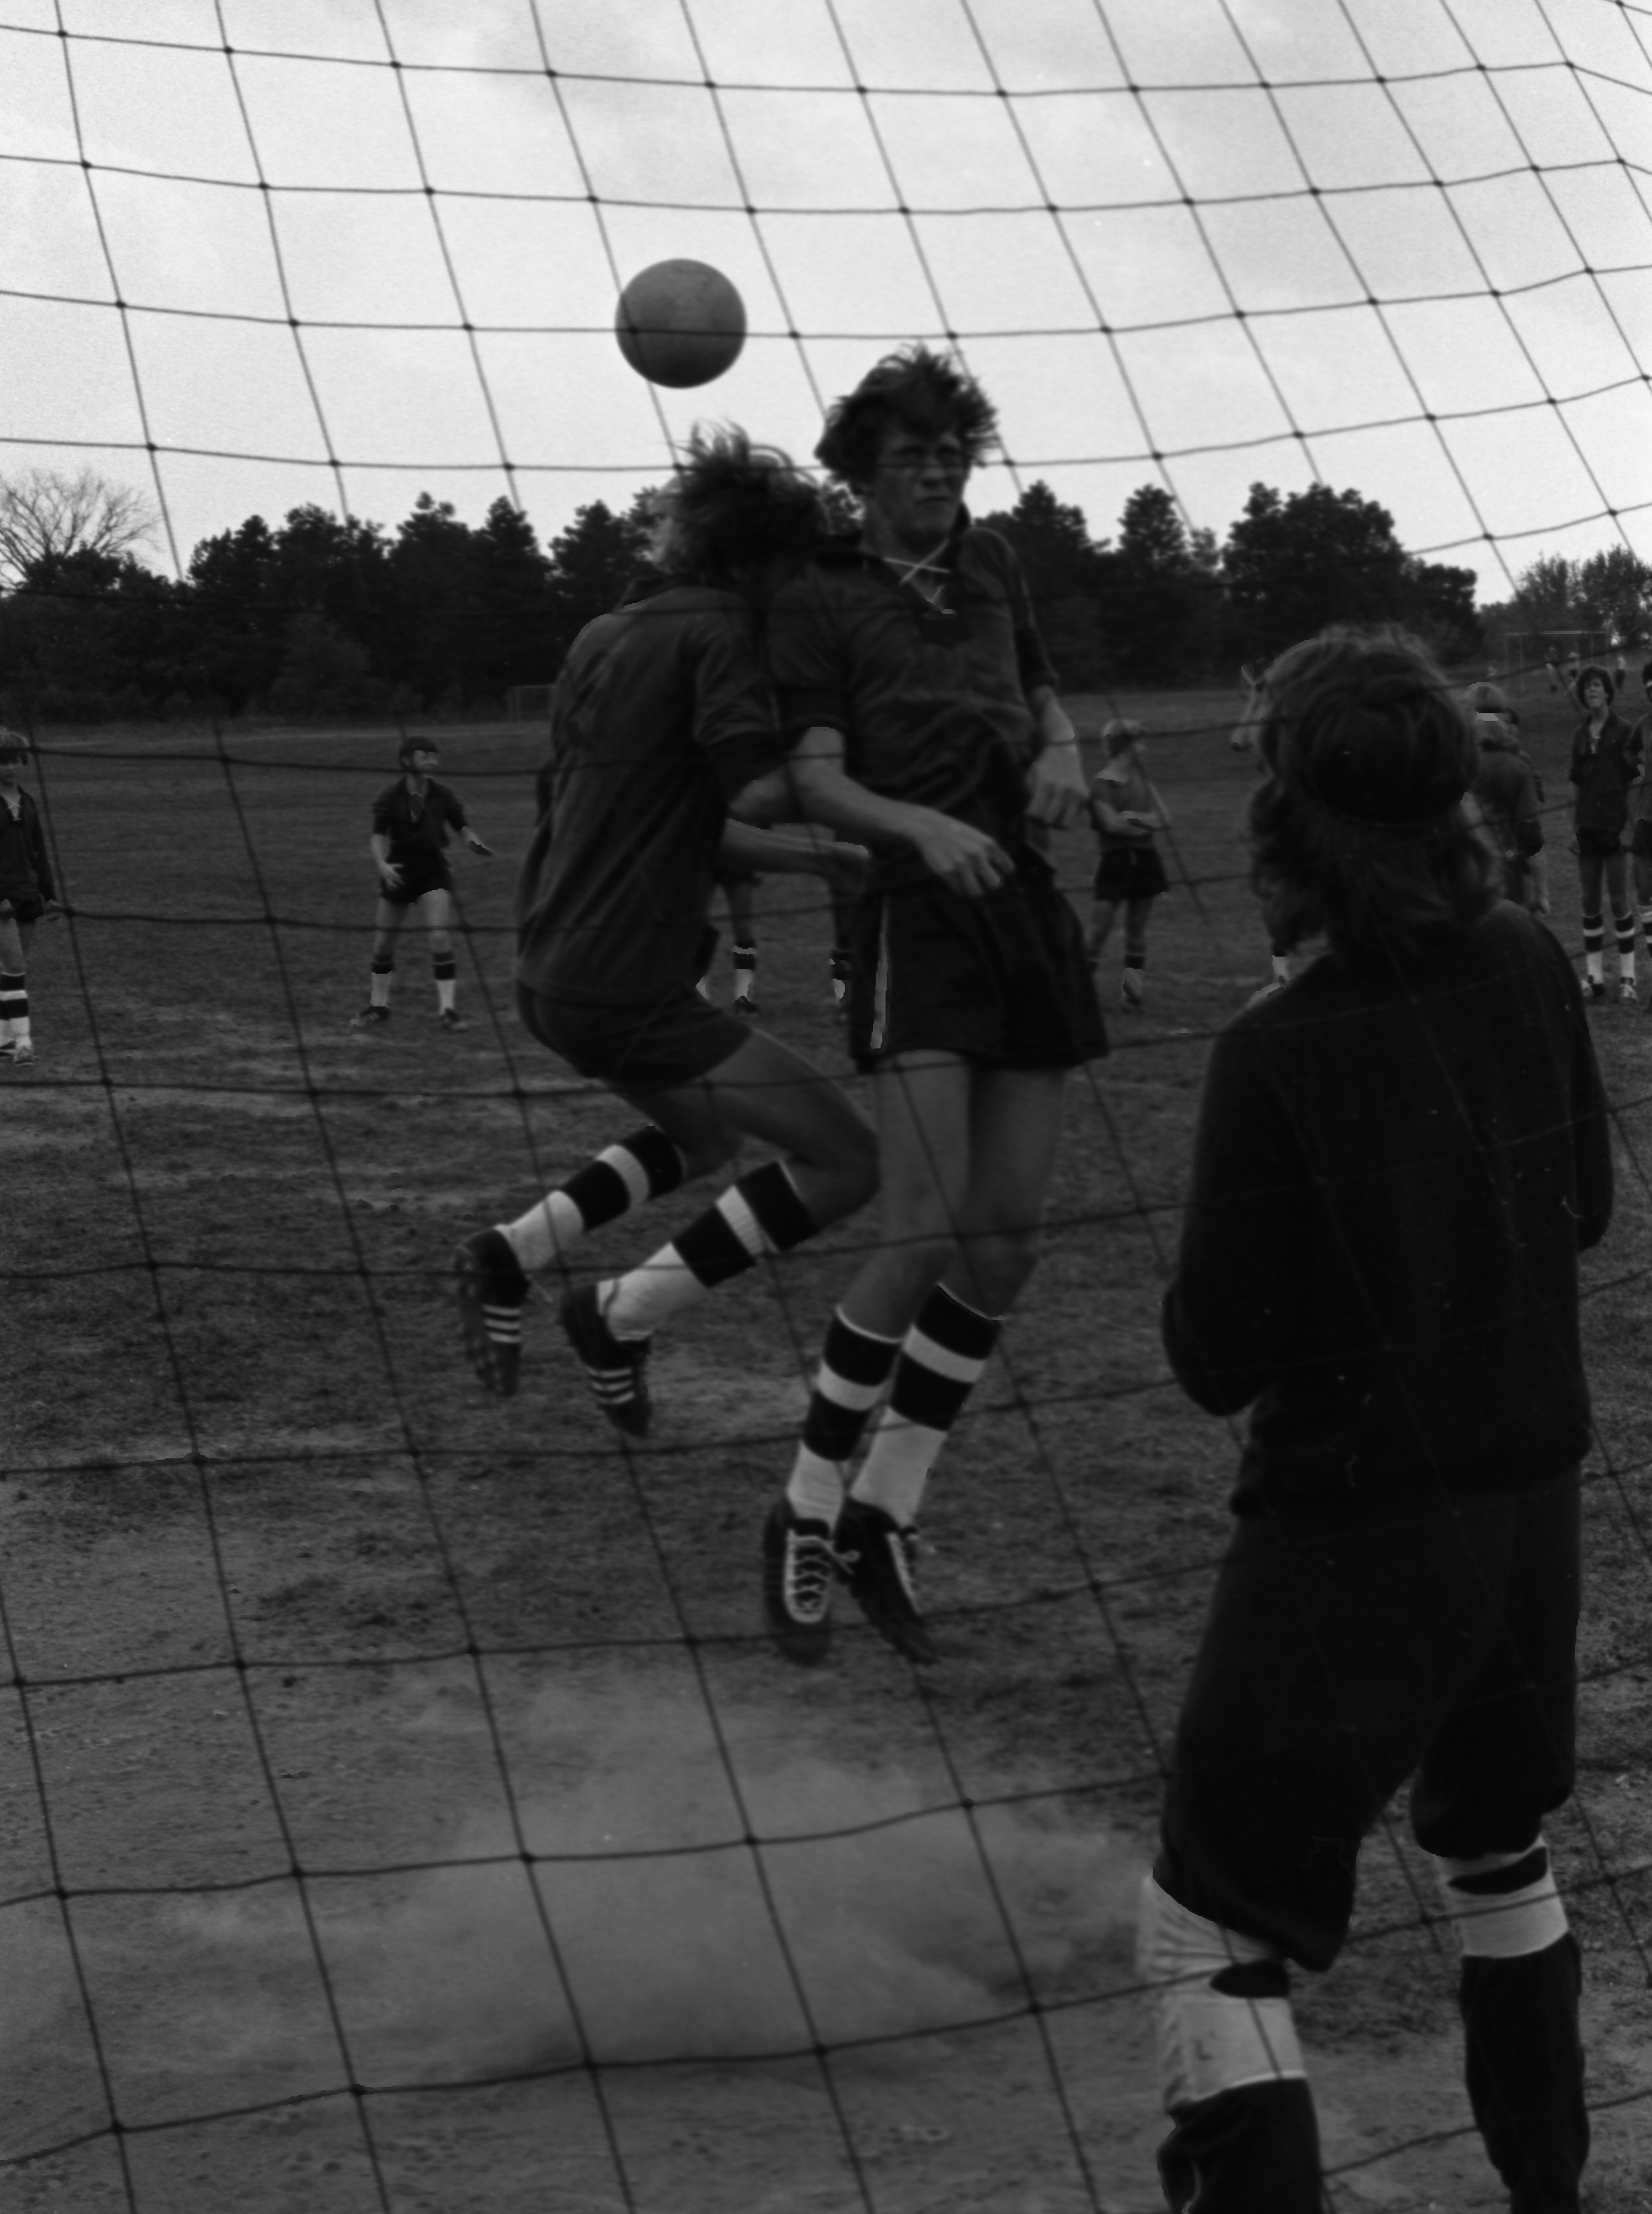 Soccer Practice At Greenhills School, September 15, 1974 image